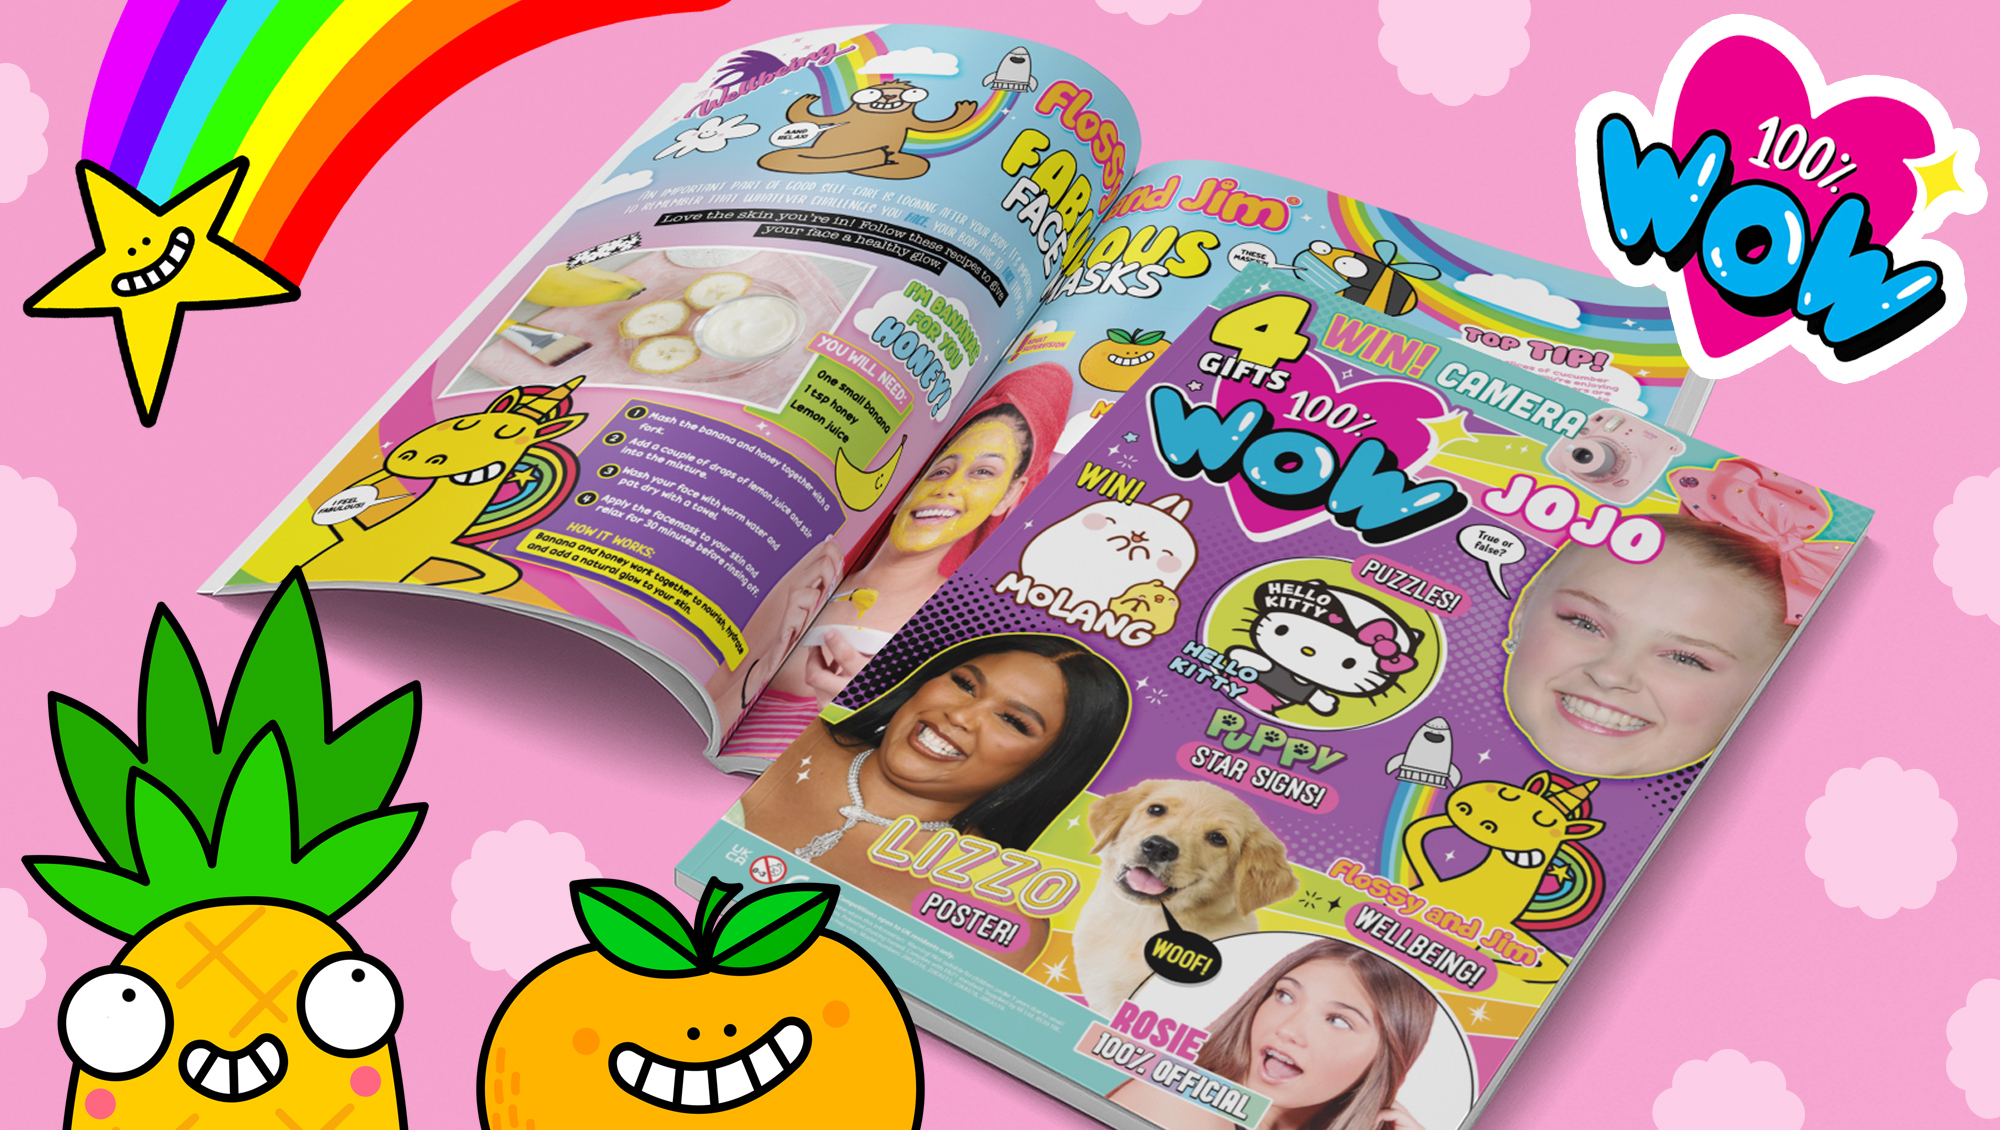 Flossy and Jim features in 100% Wow magazine from Kennedy Publishing